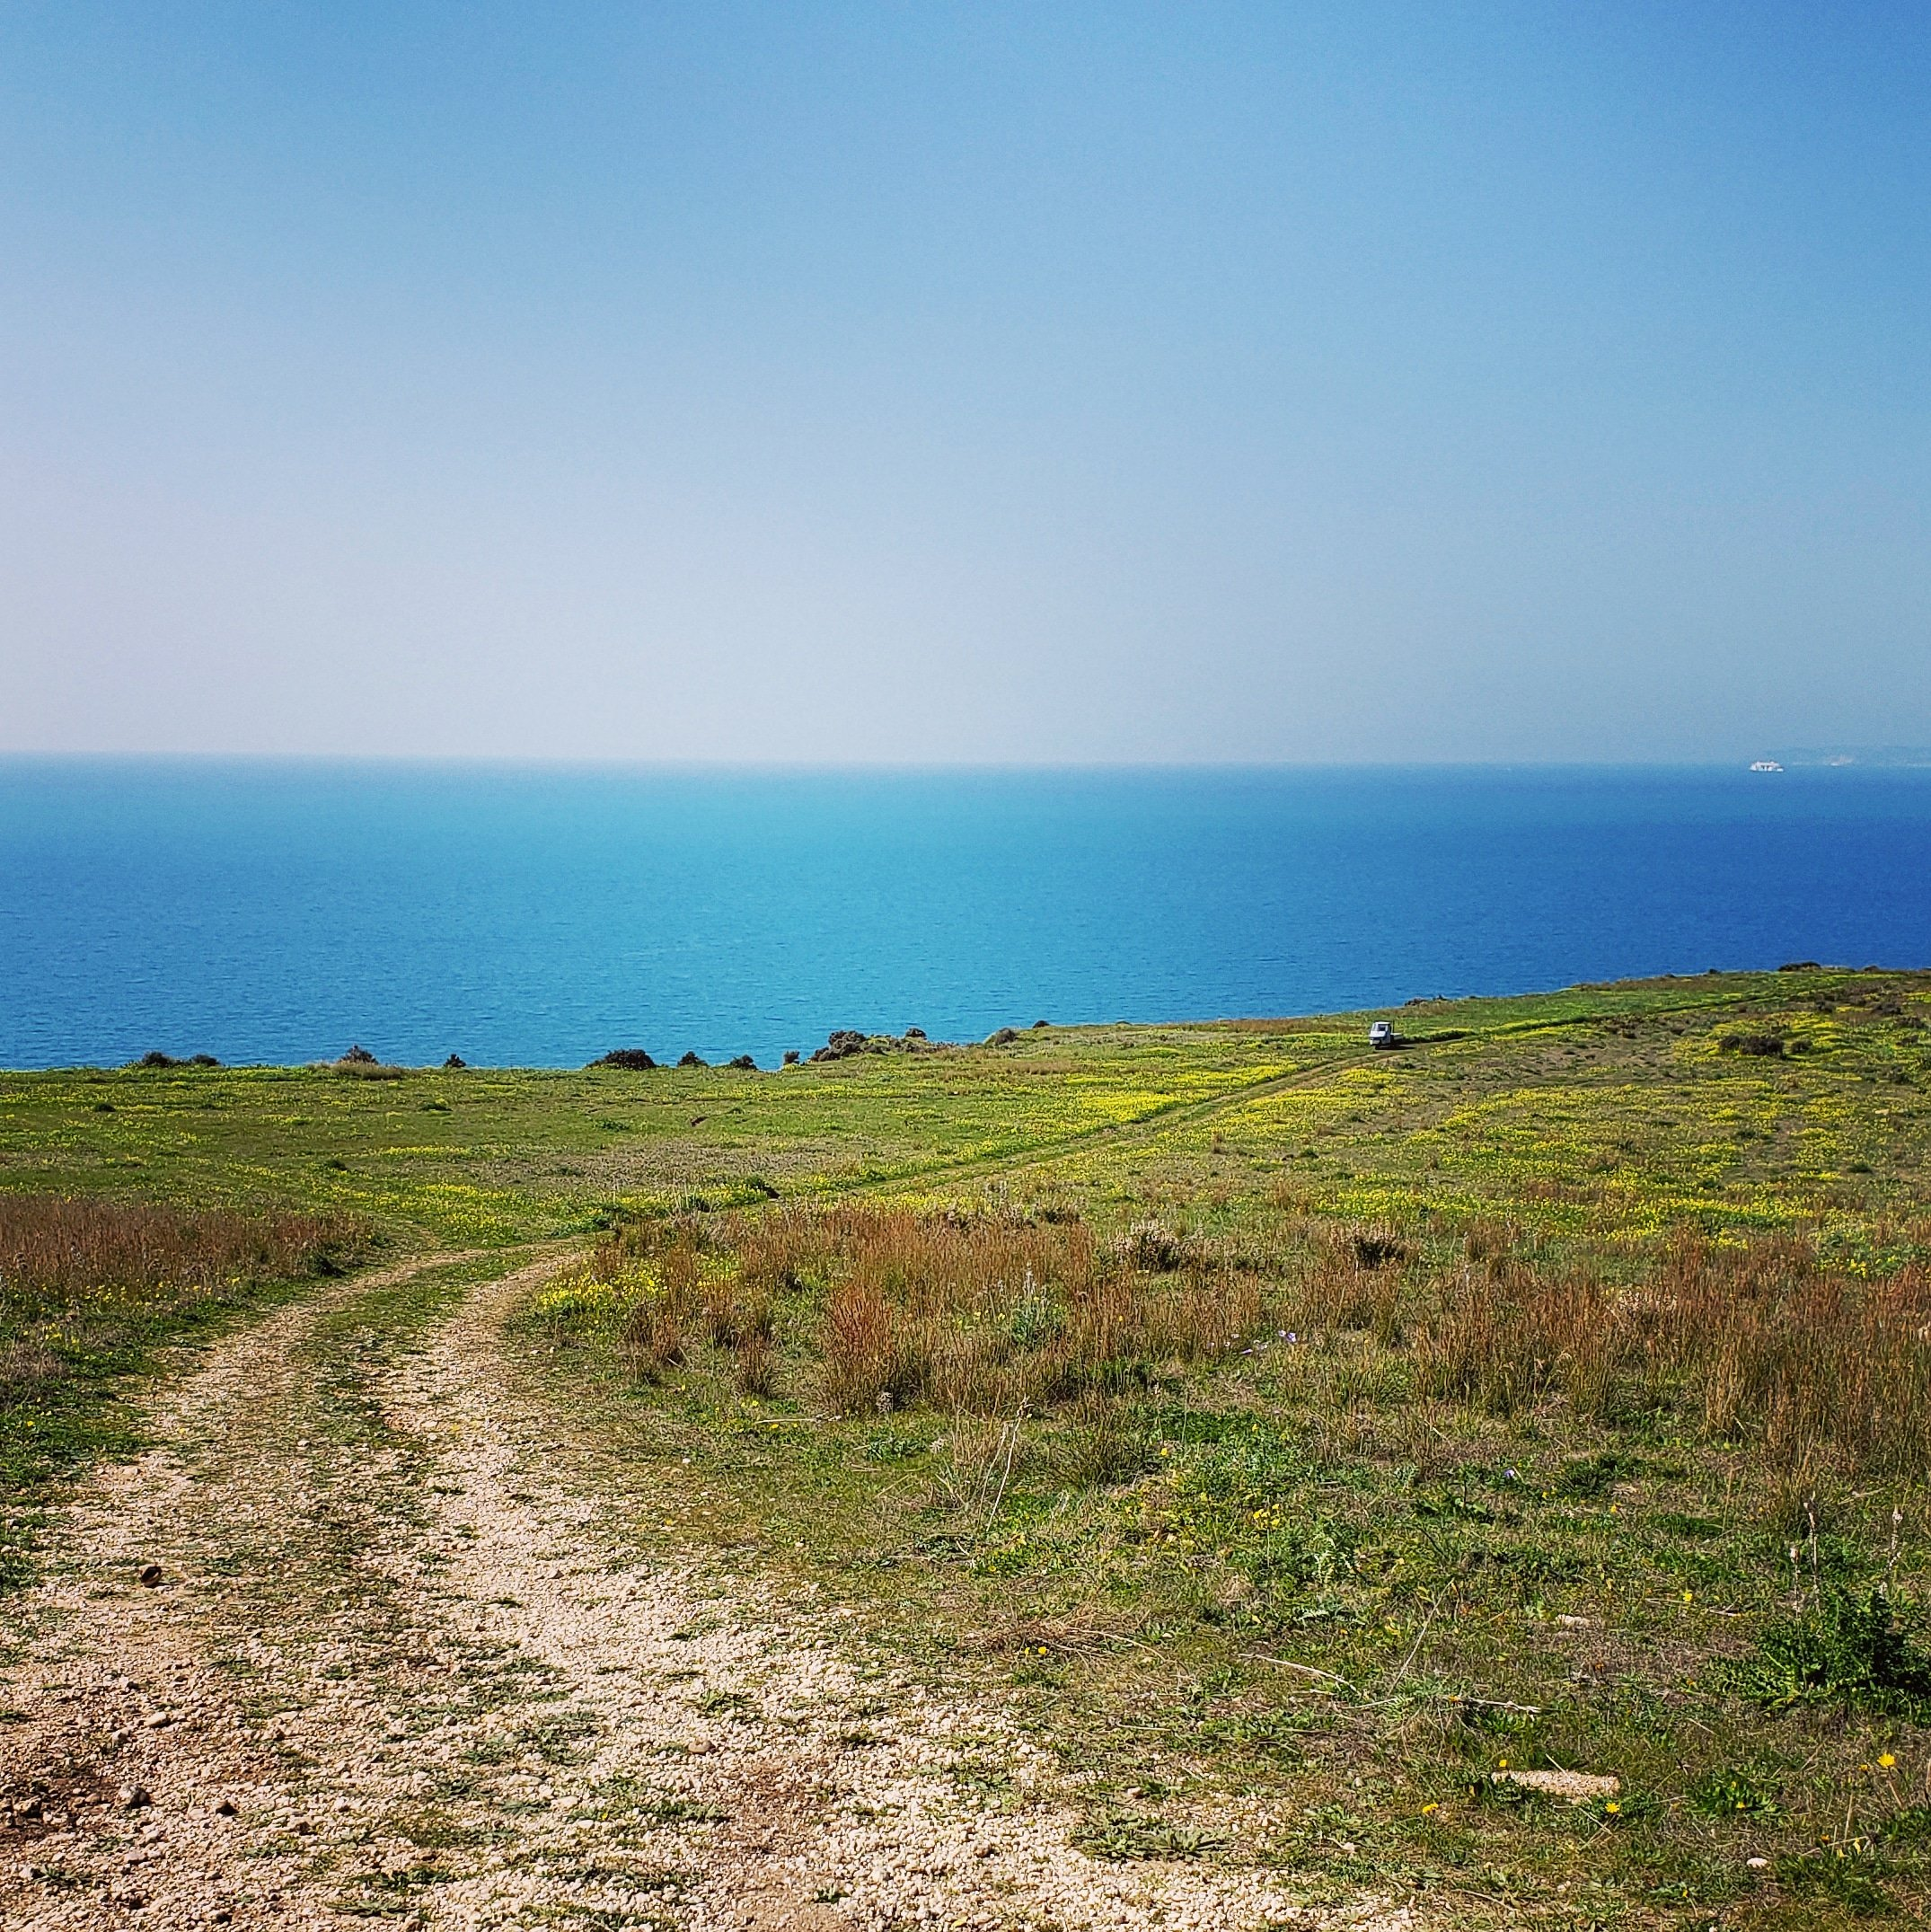 52 Reasons to Love Sicily   #44. Explore It on Foot or by Bicycle